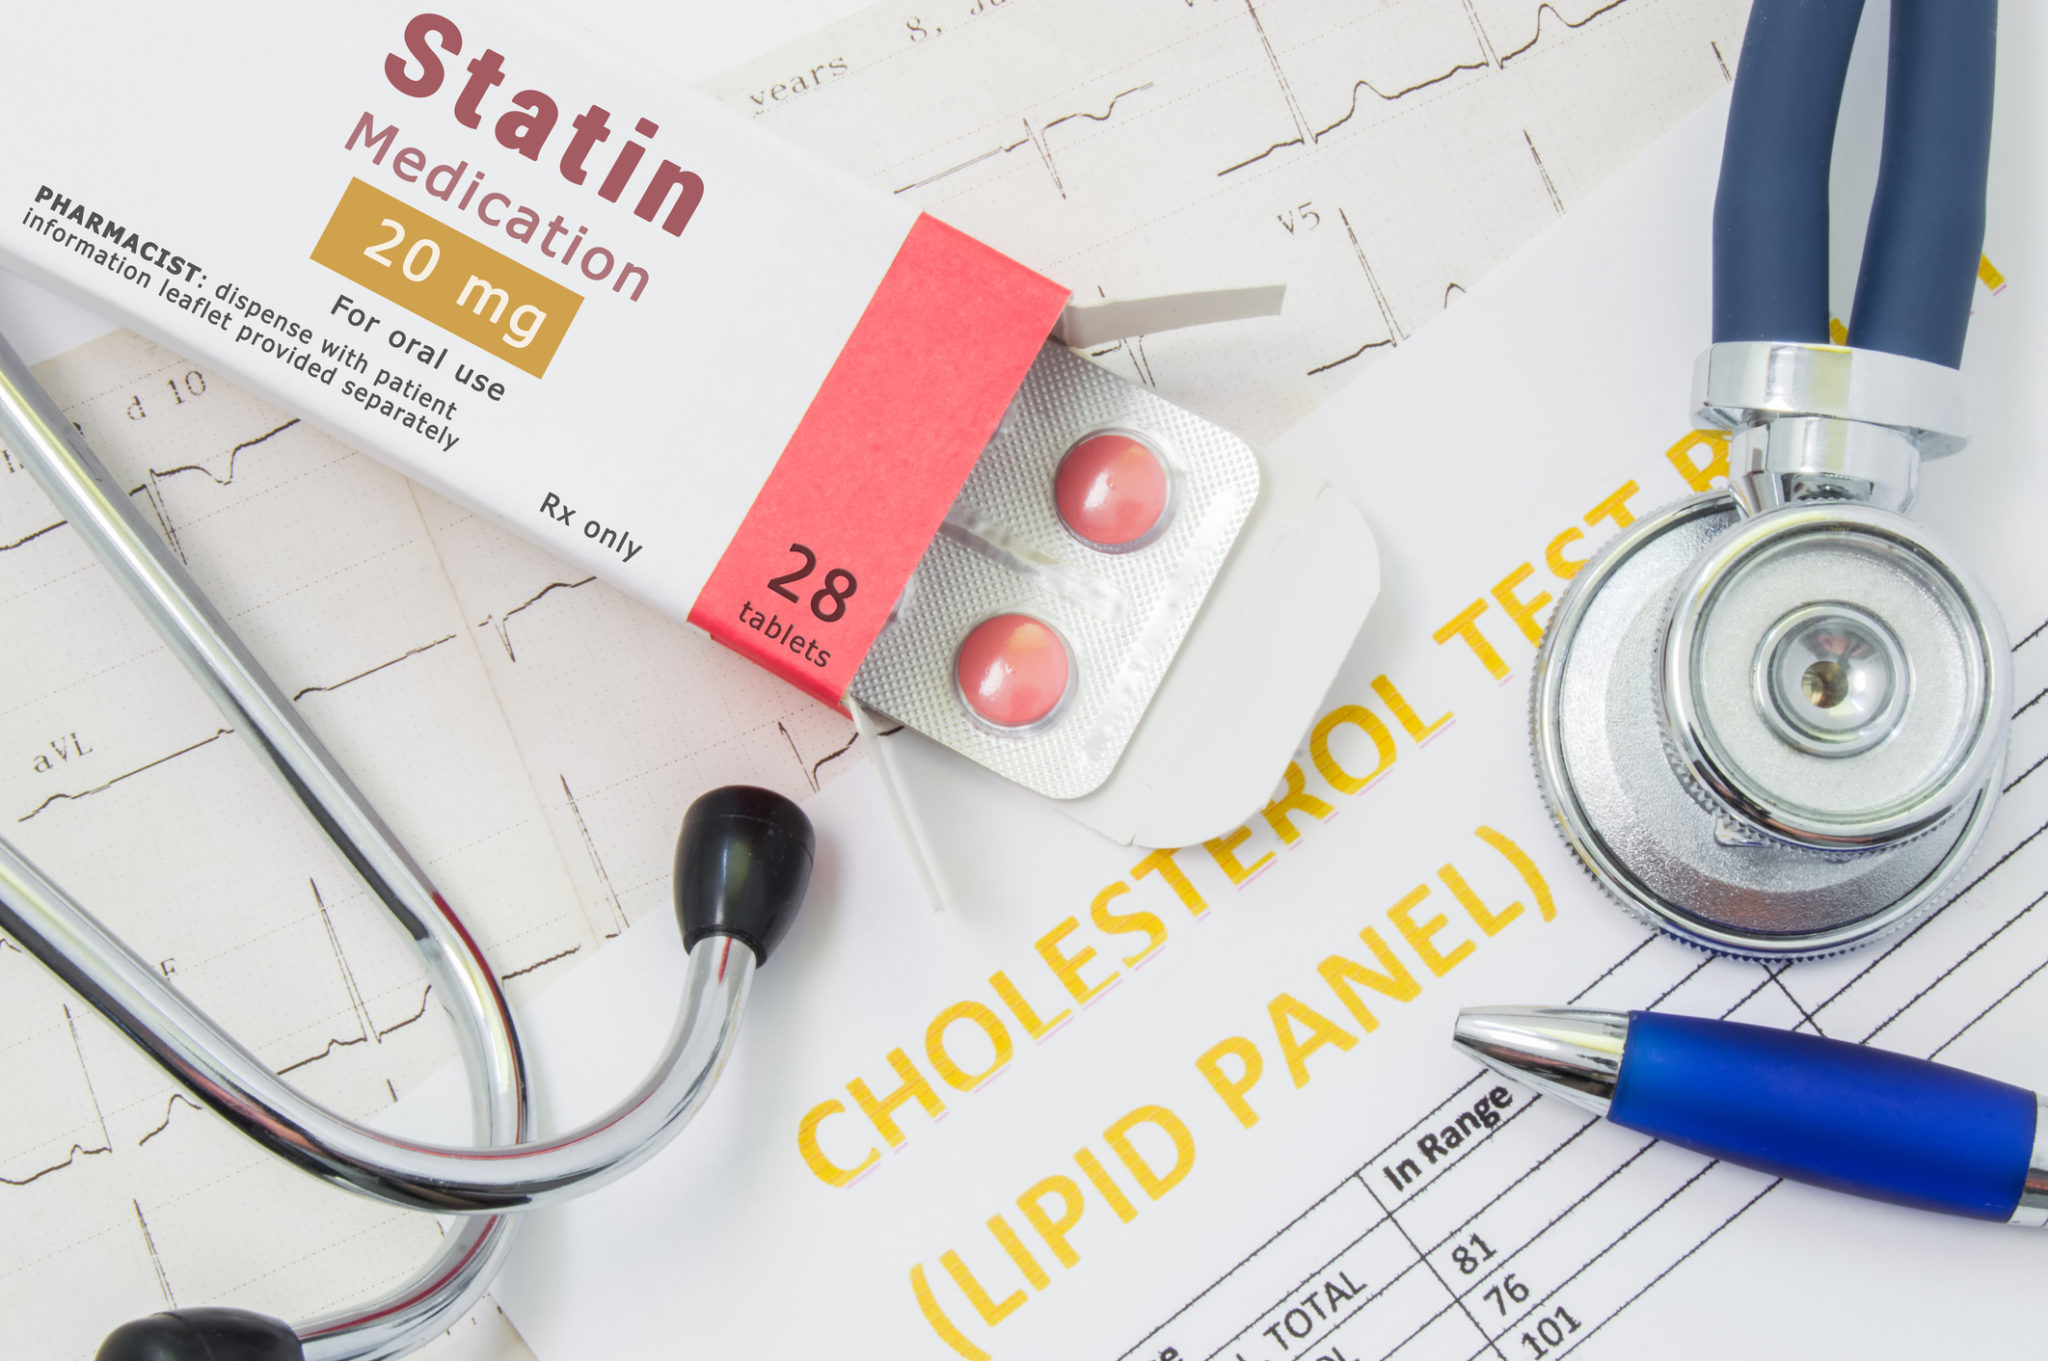 """Effects and treatment of statins concept photo. Open packaging with drugs tablets, on which is written """"Statin Medication"""", lies near stethoscope, result analysis on cholesterol (lipid panel) and ECG"""